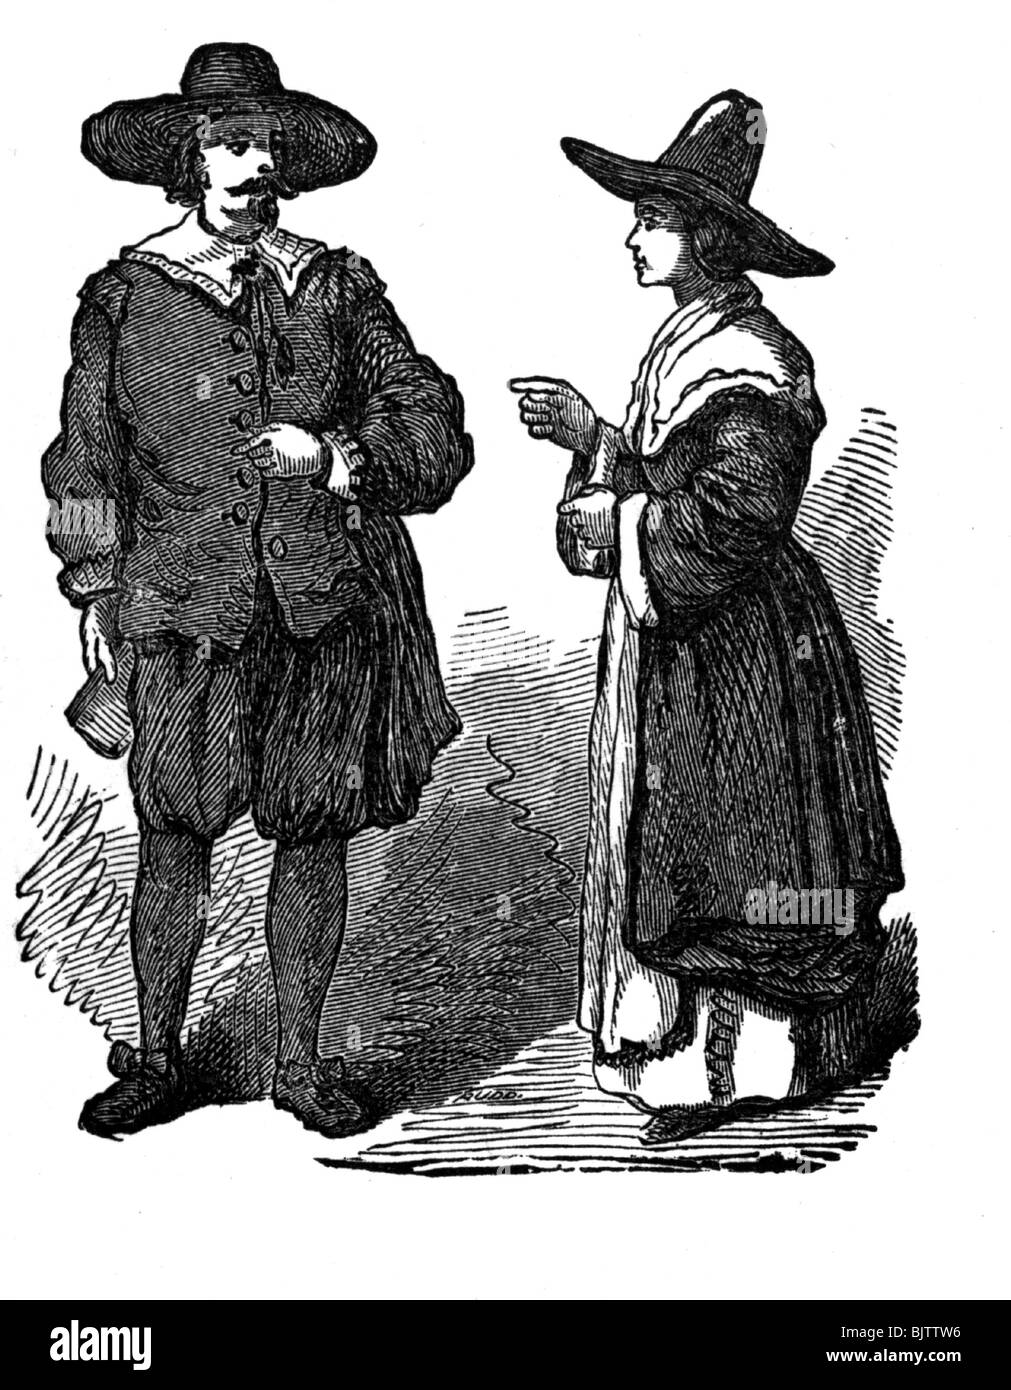 a look at the traditional english courtship in the 17th century In the early modern period, customs of courtship and marriage were undergoing significant shifts throughout the medieval period, money, class or alliance governed and regulated marriage as europe modernized, however, the puritans and others began to champion the novel idea of marriages based.